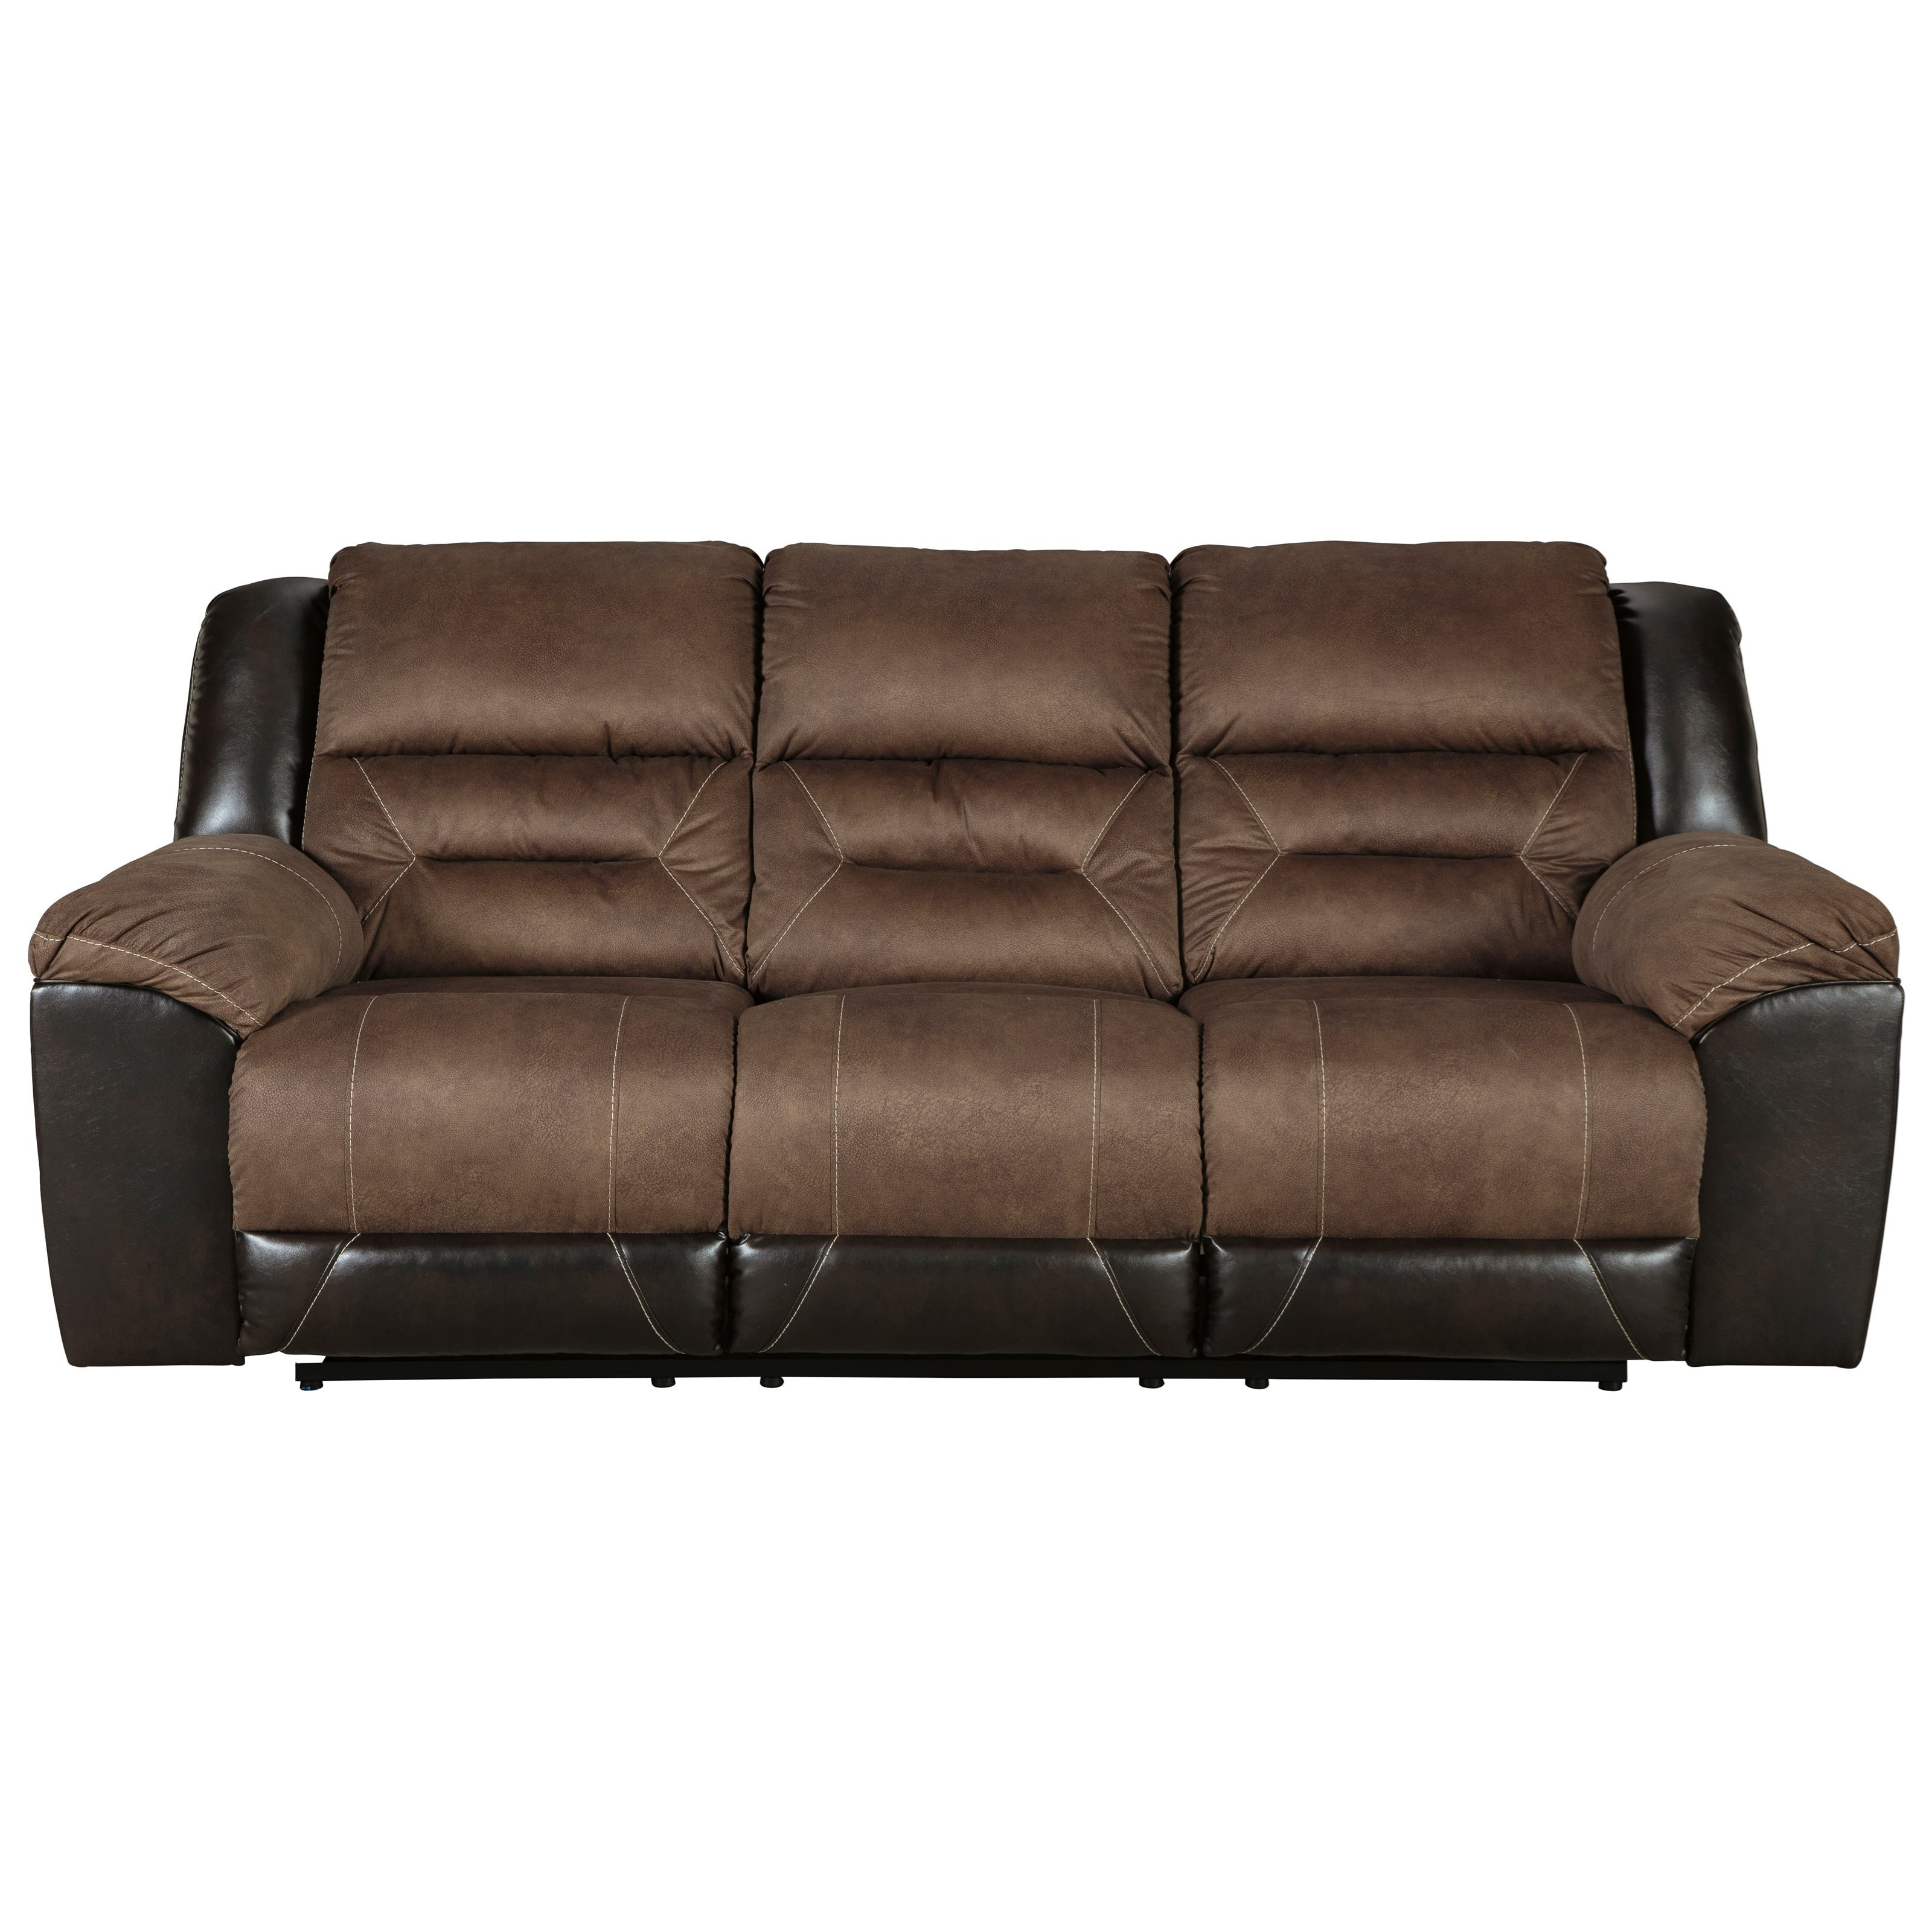 DALLAS Reclining Sofa by StyleLine at EFO Furniture Outlet